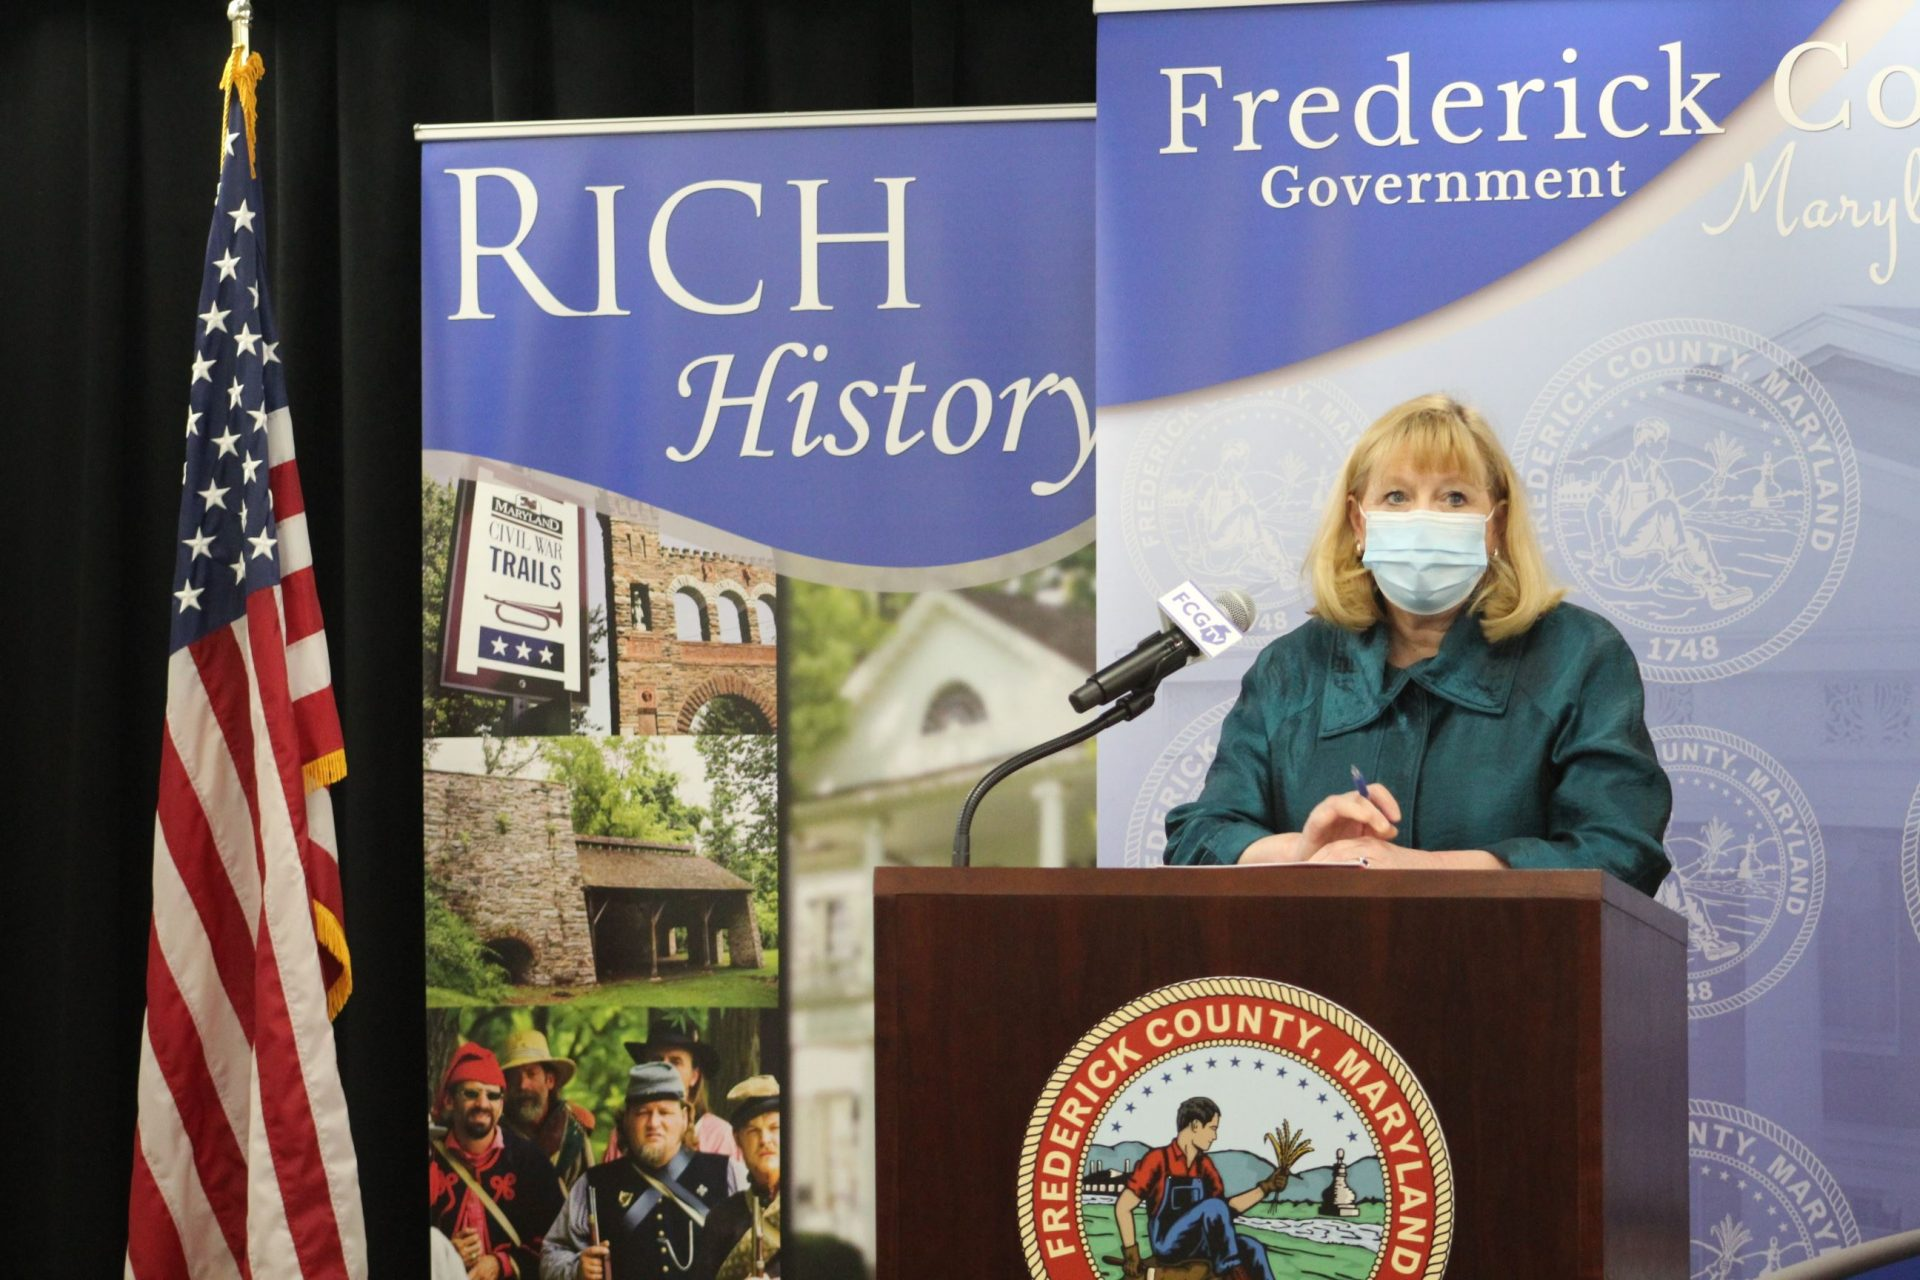 Frederick Offers Second Round of Restaurant Grants